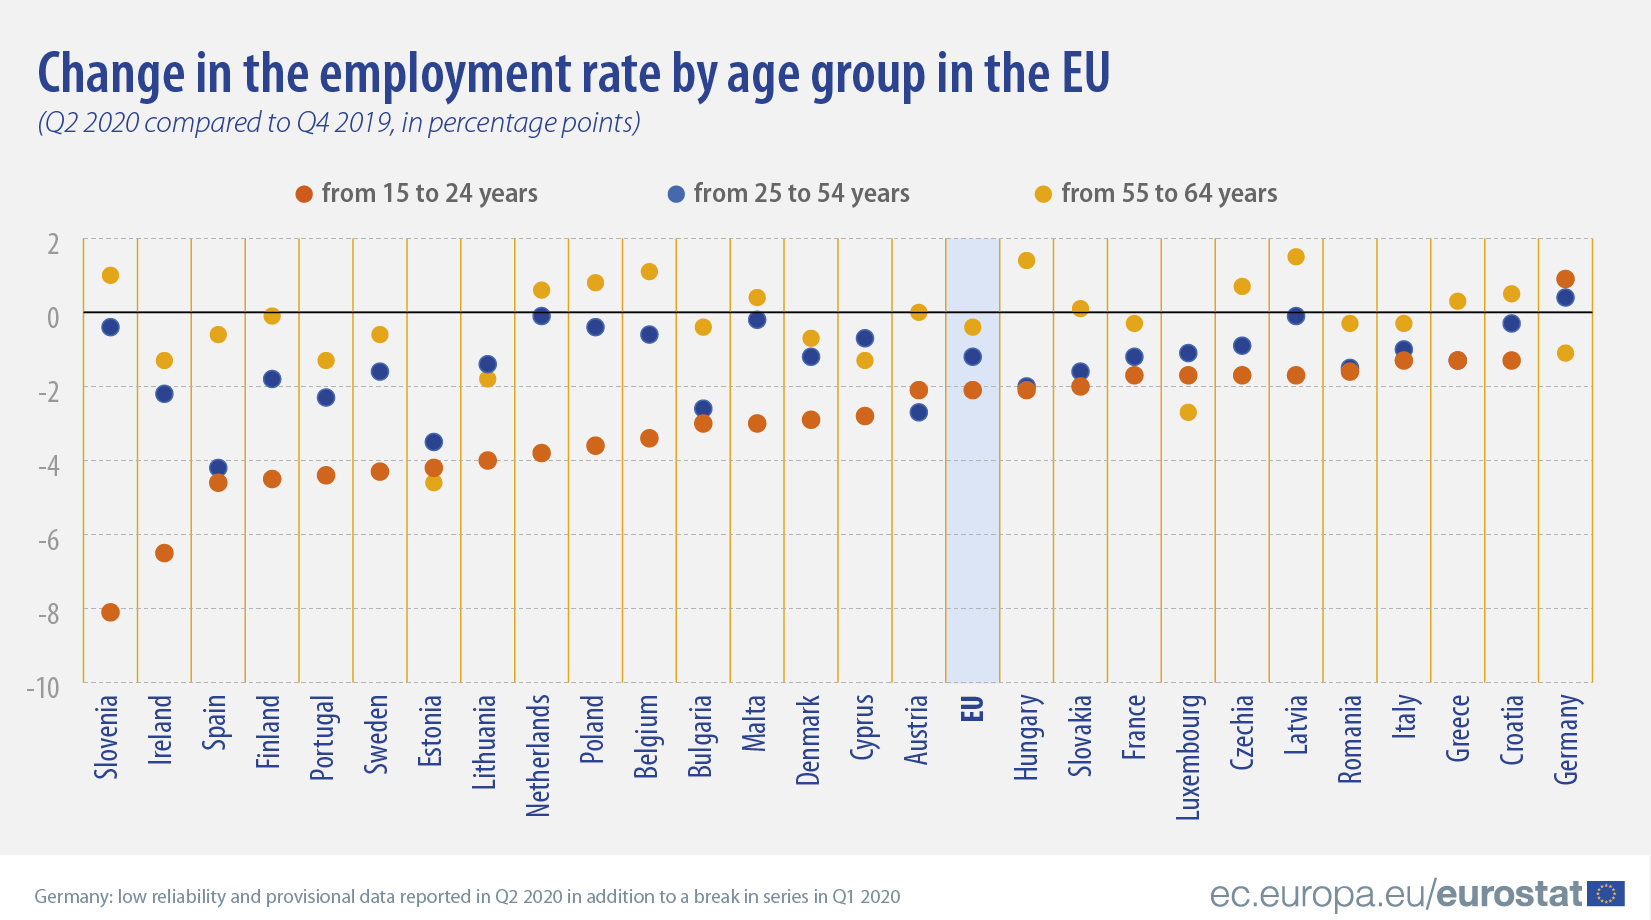 Change in the employment rate by age group in the EU